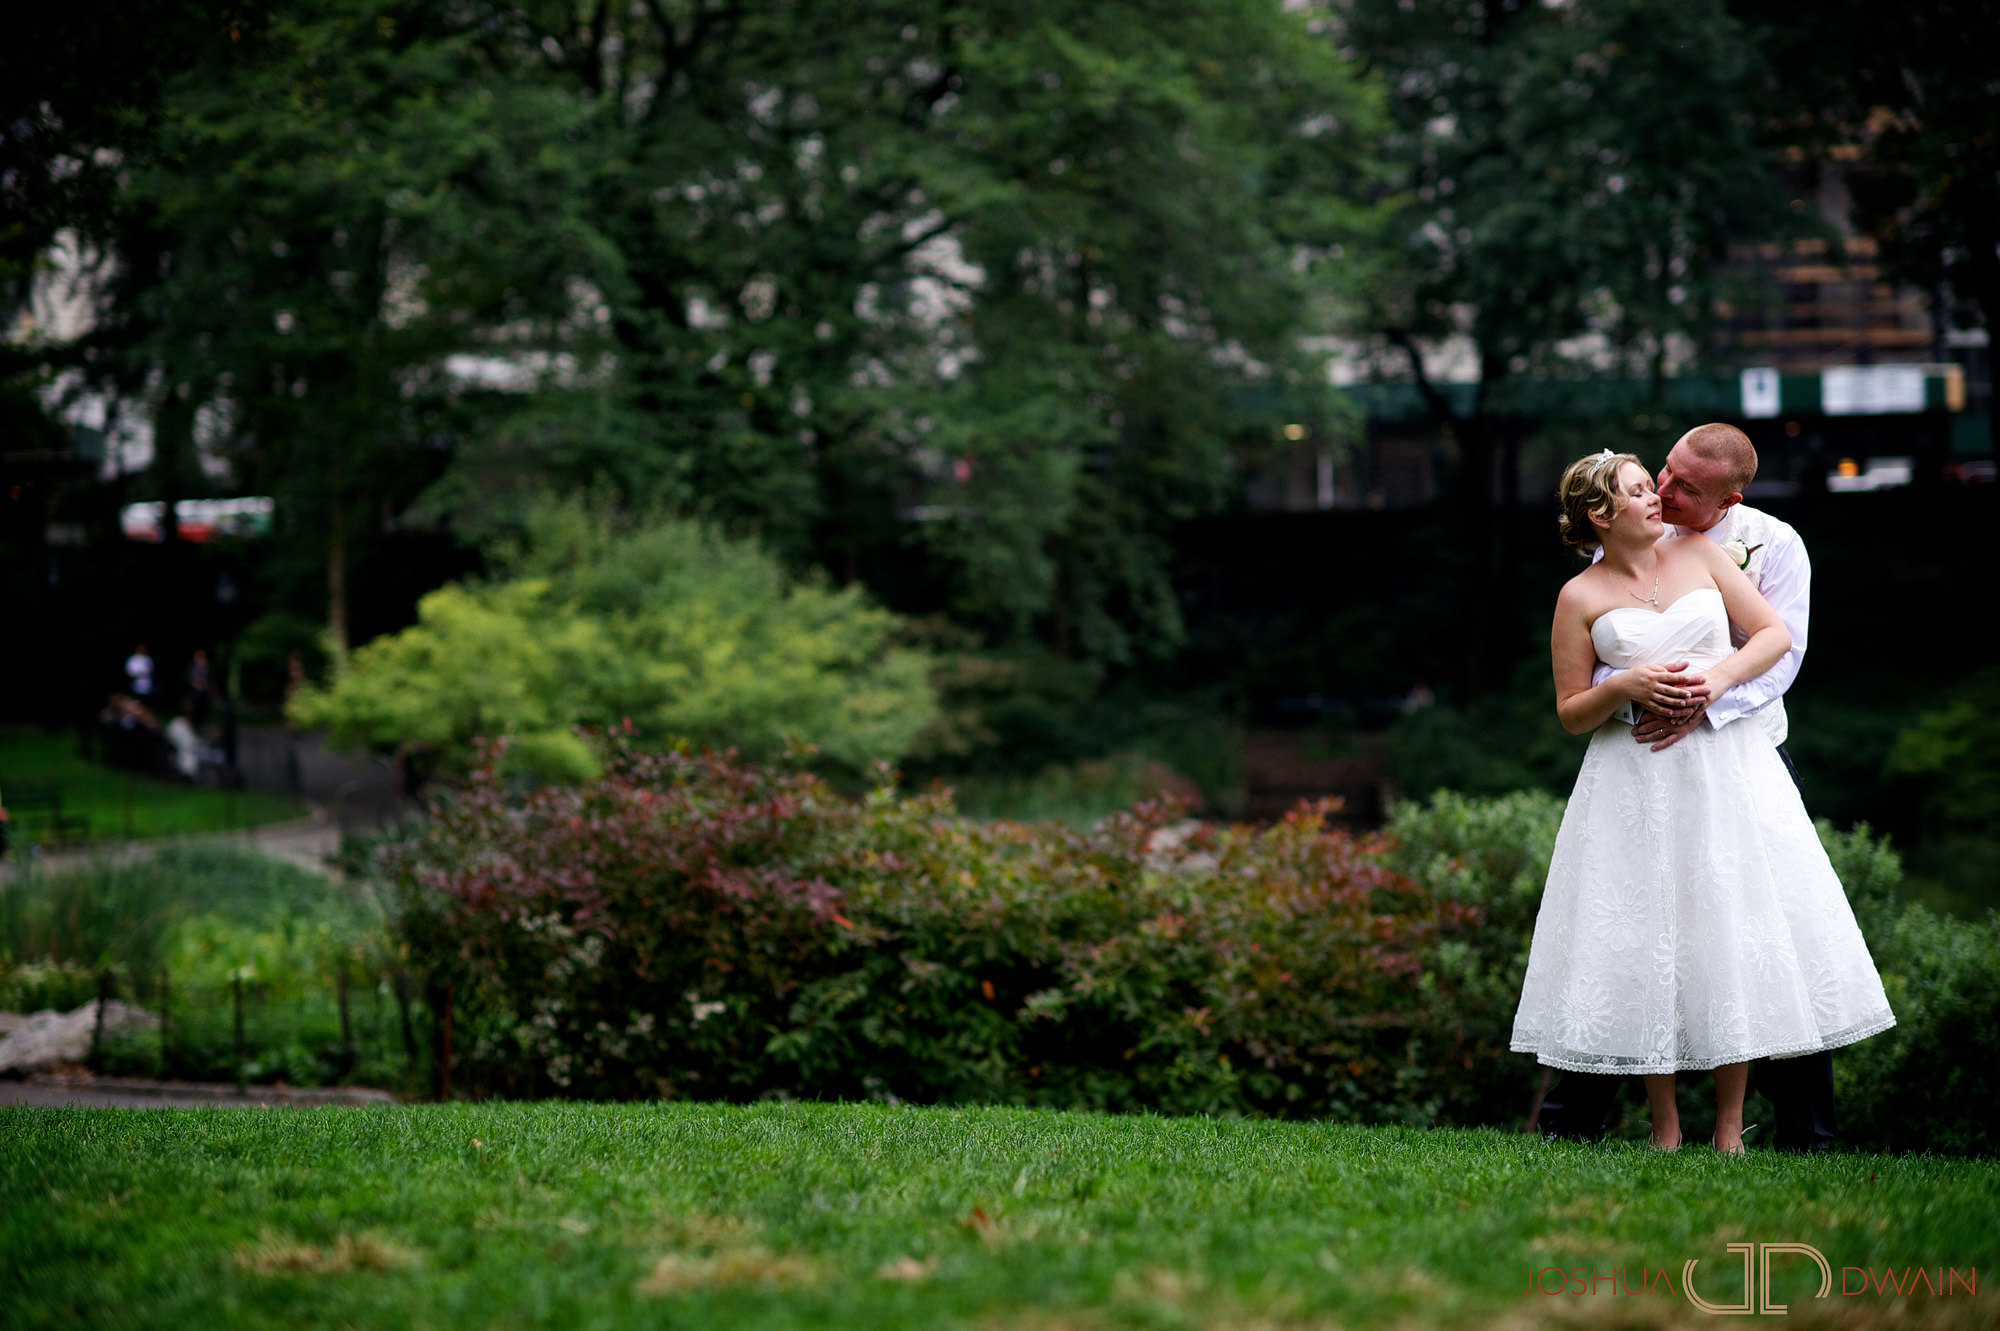 new-york-city-elopement-wedding-photography-021-joshua-dwain